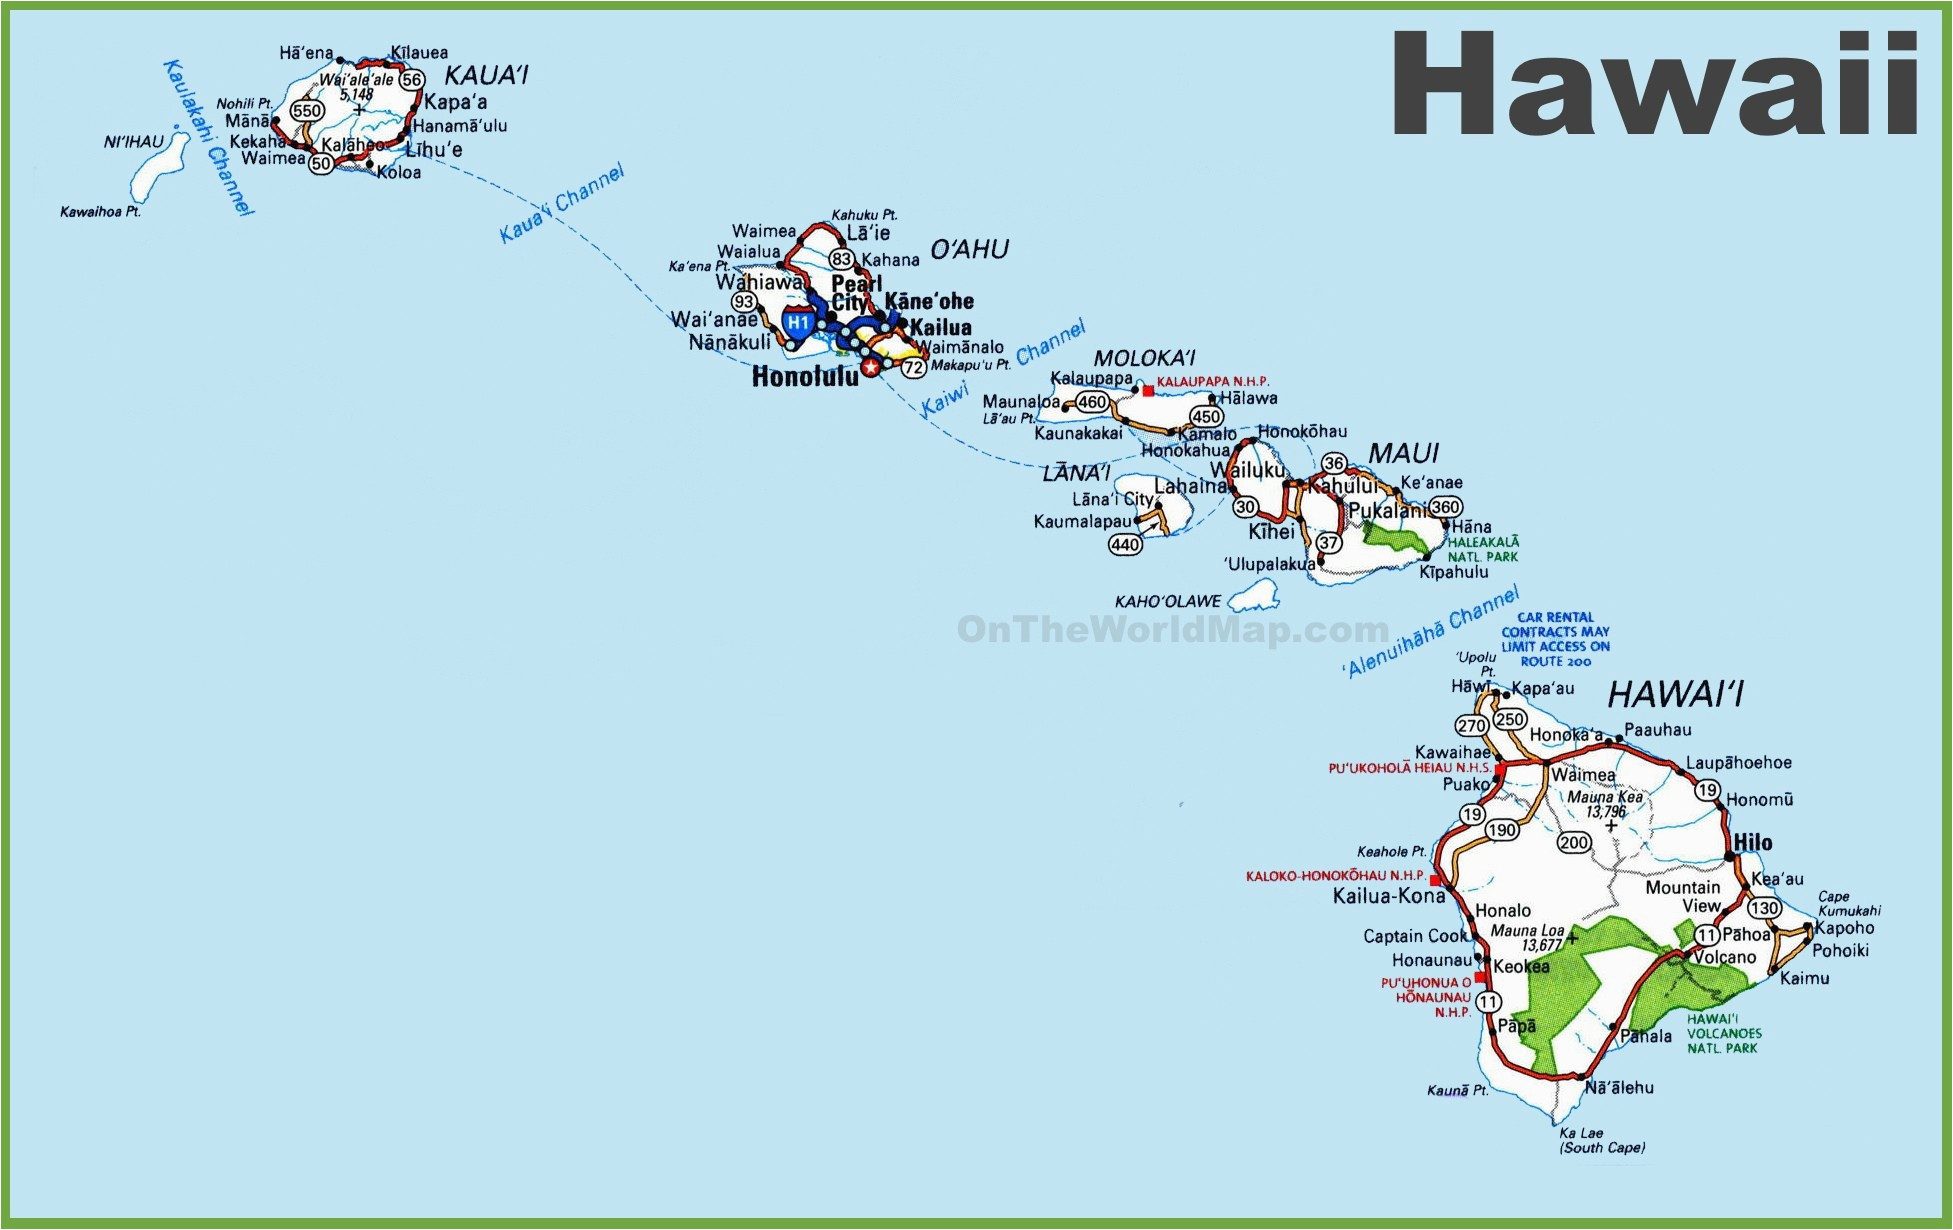 Map Of Hawaiian islands and California Map Hawaii 12 In West Usa and Kumukahi Island Of Hawaii Map on map of fiji island, best beaches hawaii islands, map of oahu, map of fort myers beach florida, map of japan, about hawaii islands, map of kauai, map of brazil, map of maui, map of wildwood new jersey, map of guam, map of new york city ny, map of new brunswick canada, google maps hawaii islands, map of nantucket island massachusetts, map of singapore, weather hawaii islands, map guam islands, map of waikiki restaurants, map of iceland,